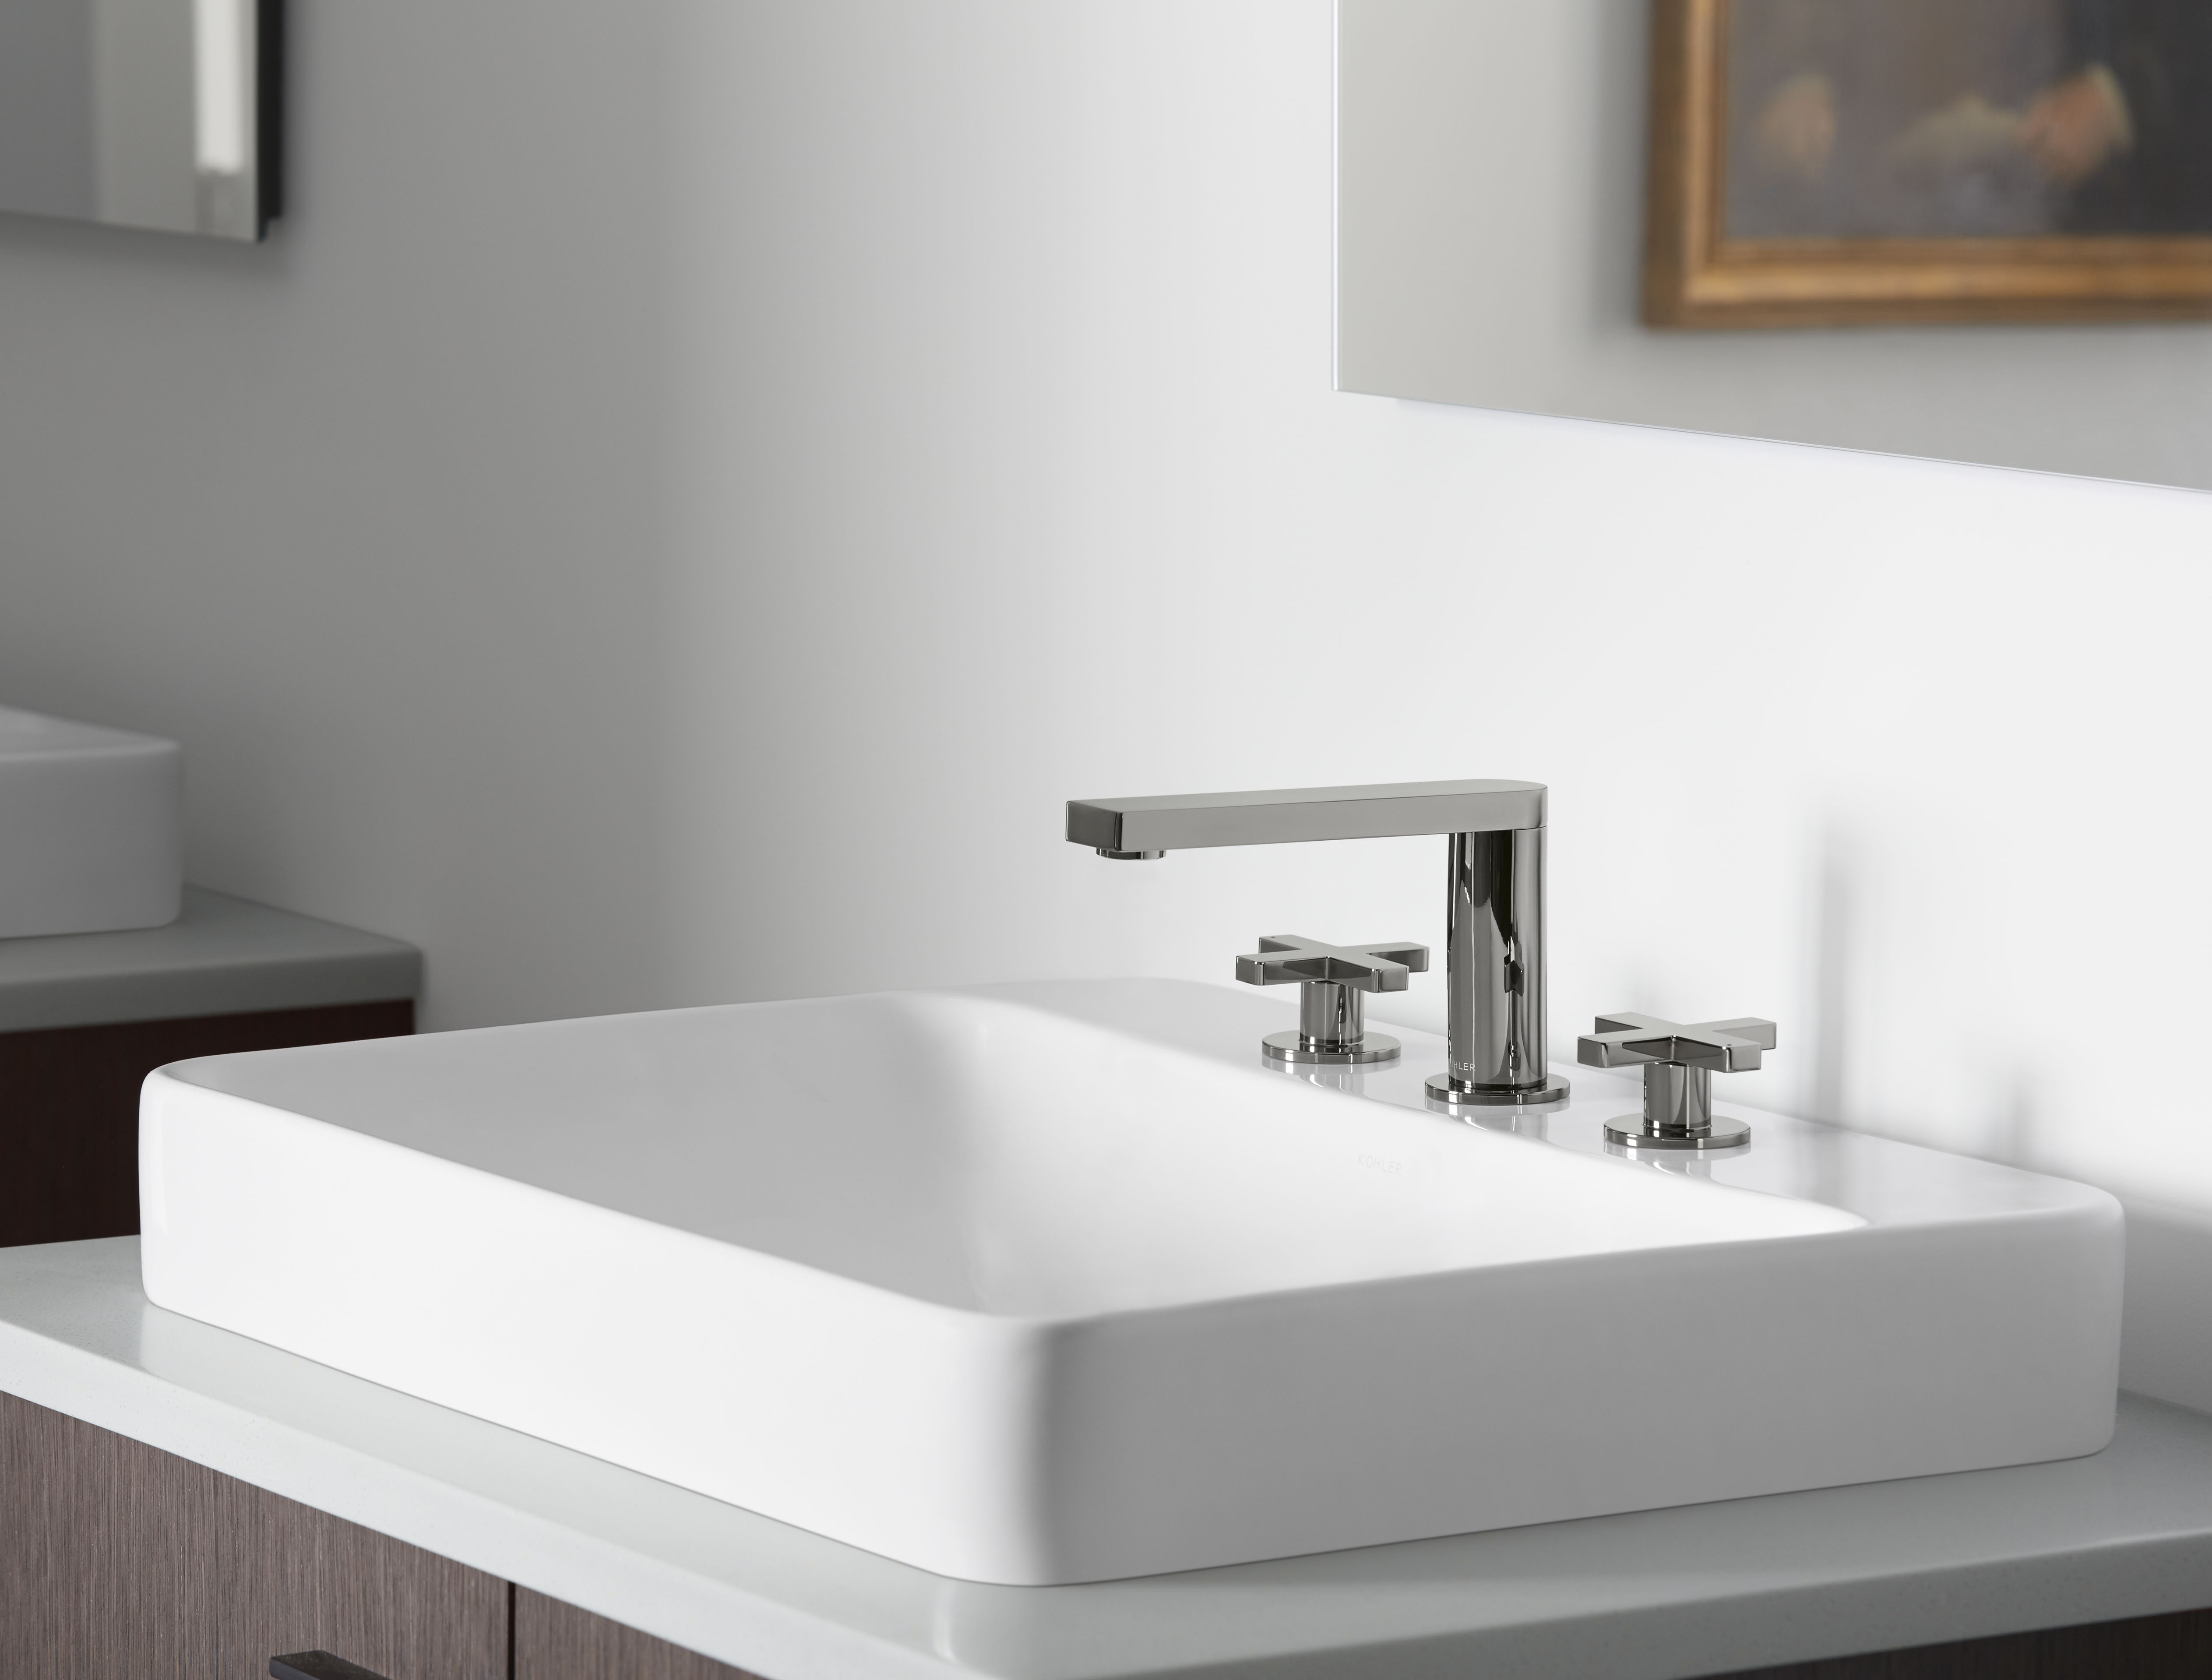 Composed Faucet     Vox Sink     The edgy, cool metallic of this Vibrant® Titanium finish elevates the faucet's clean, streamlined design.